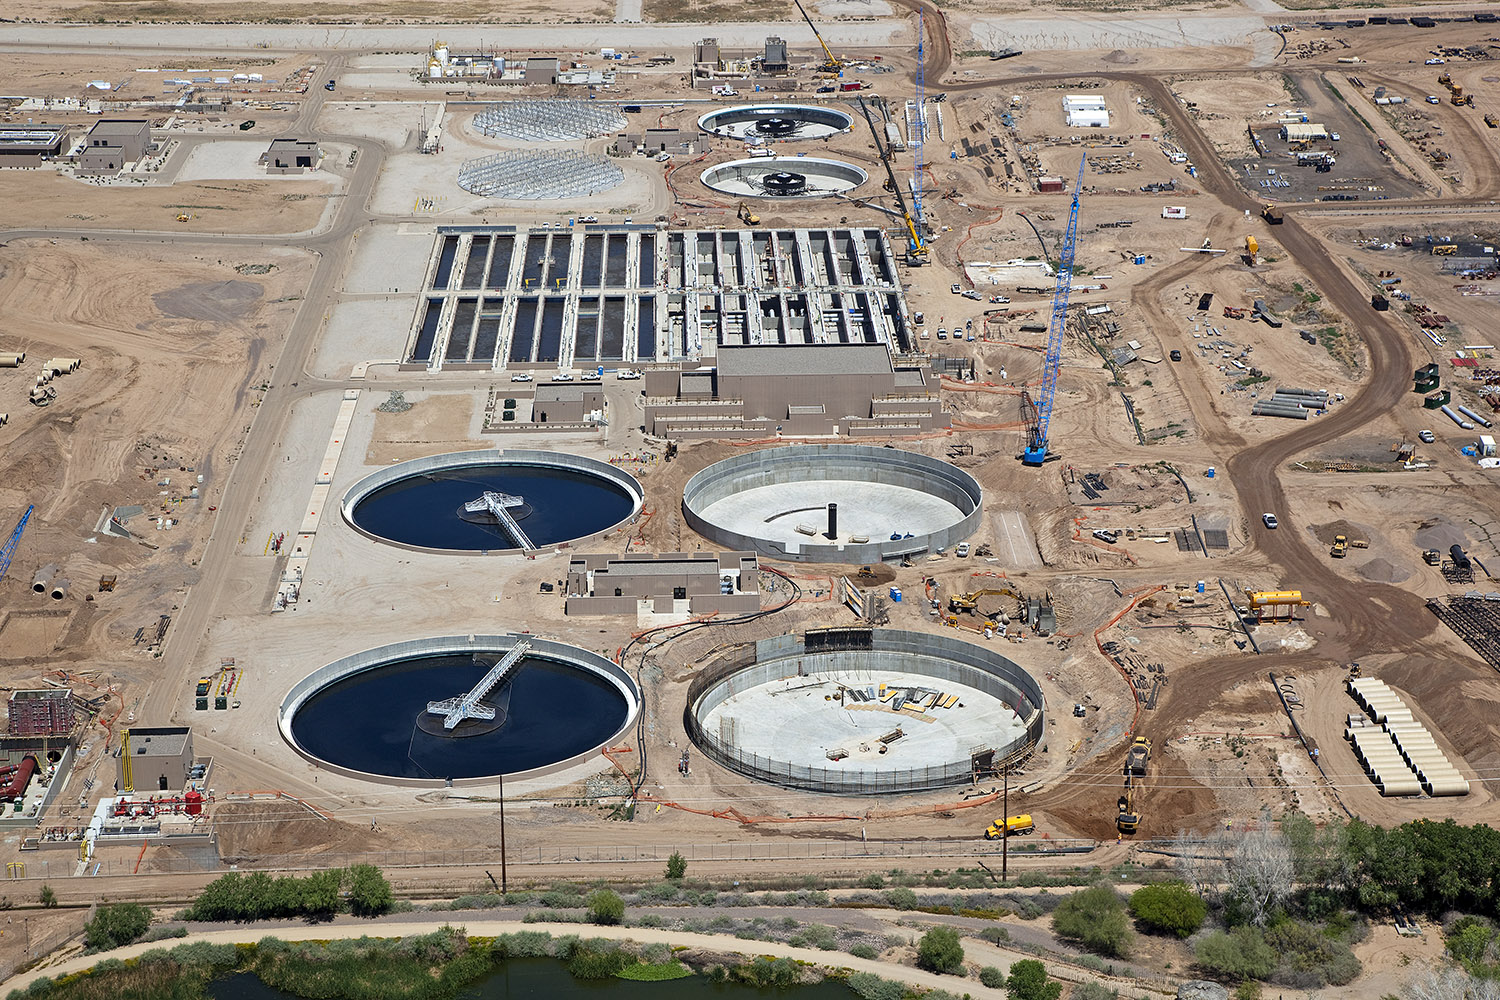 Large construction project at a waste water treatment plant